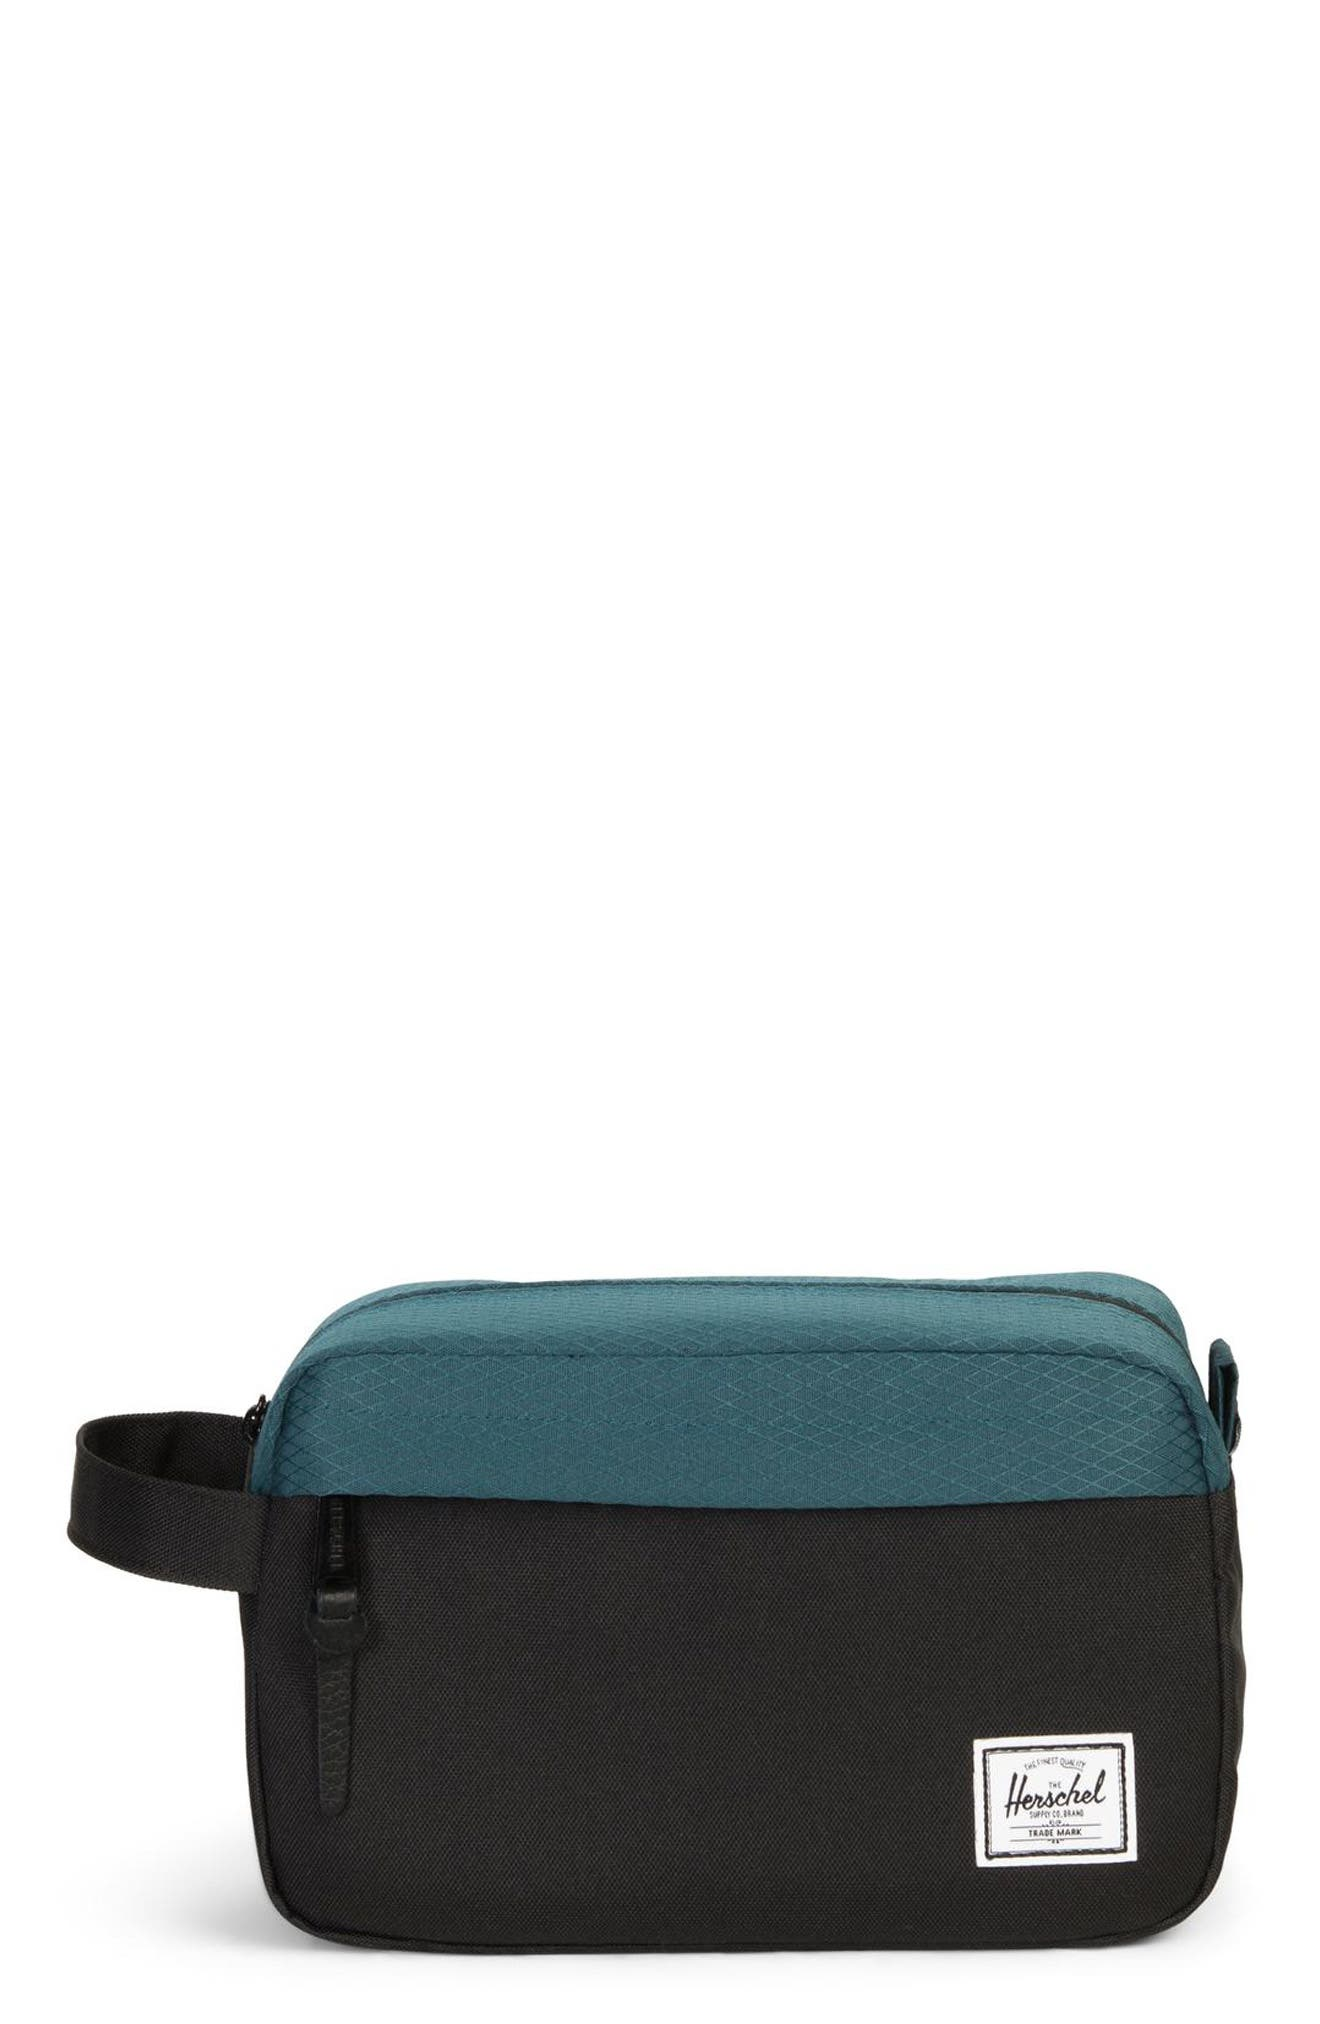 Chapter Dopp Kit,                             Main thumbnail 1, color,                             002